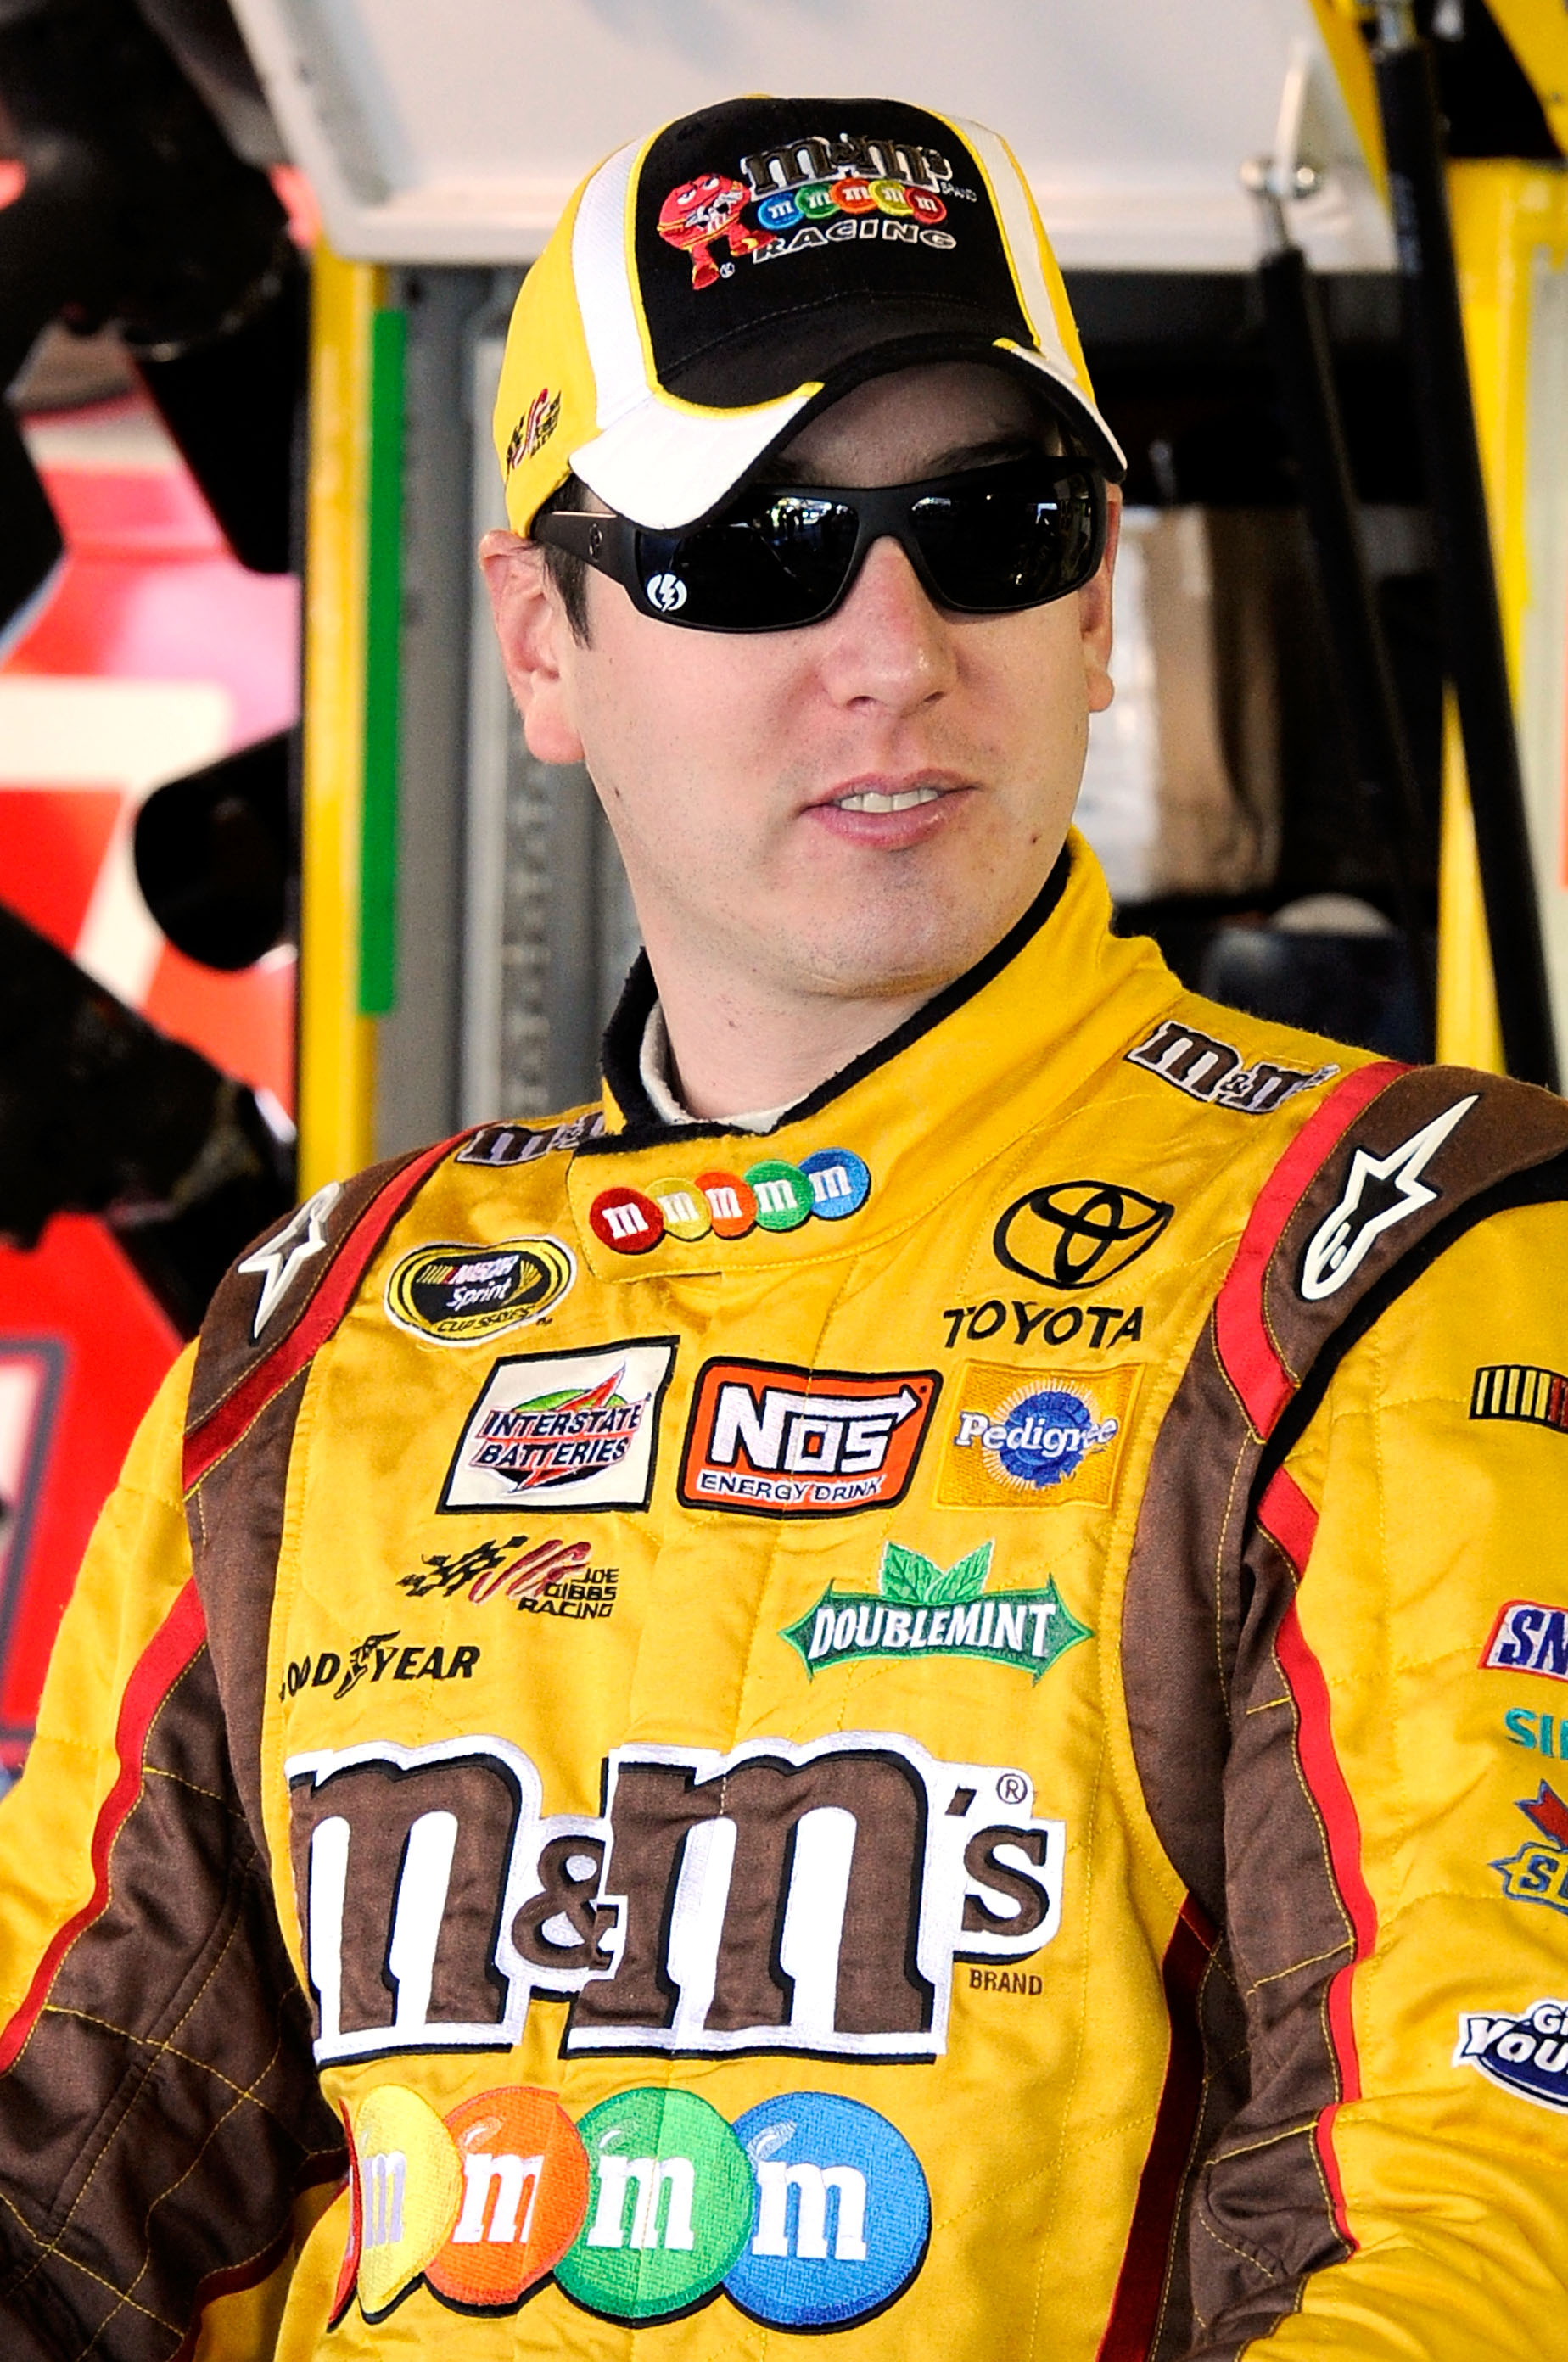 MARTINSVILLE, VA - OCTOBER 22:  Kyle Busch, driver of the #18 M&M's Toyota, stands in the garage prior to practice for the NASCAR Sprint Cup Series TUMS Fast Relief 500 at Martinsville Speedway on October 22, 2010 in Martinsville, Virginia.  (Photo by Joh